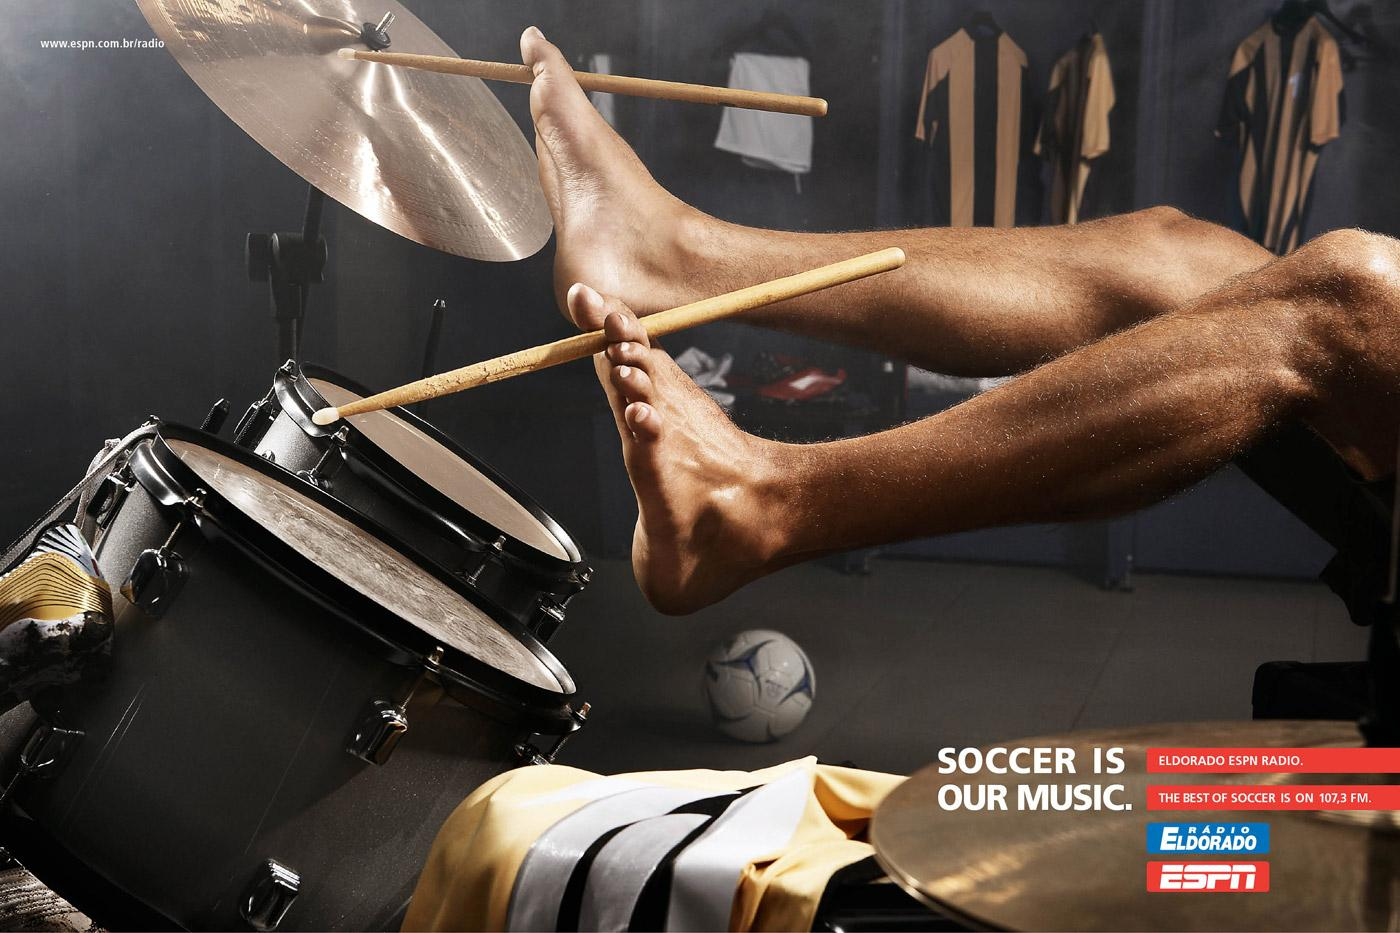 ESPN Print Ad -  Soccer is our music, 3